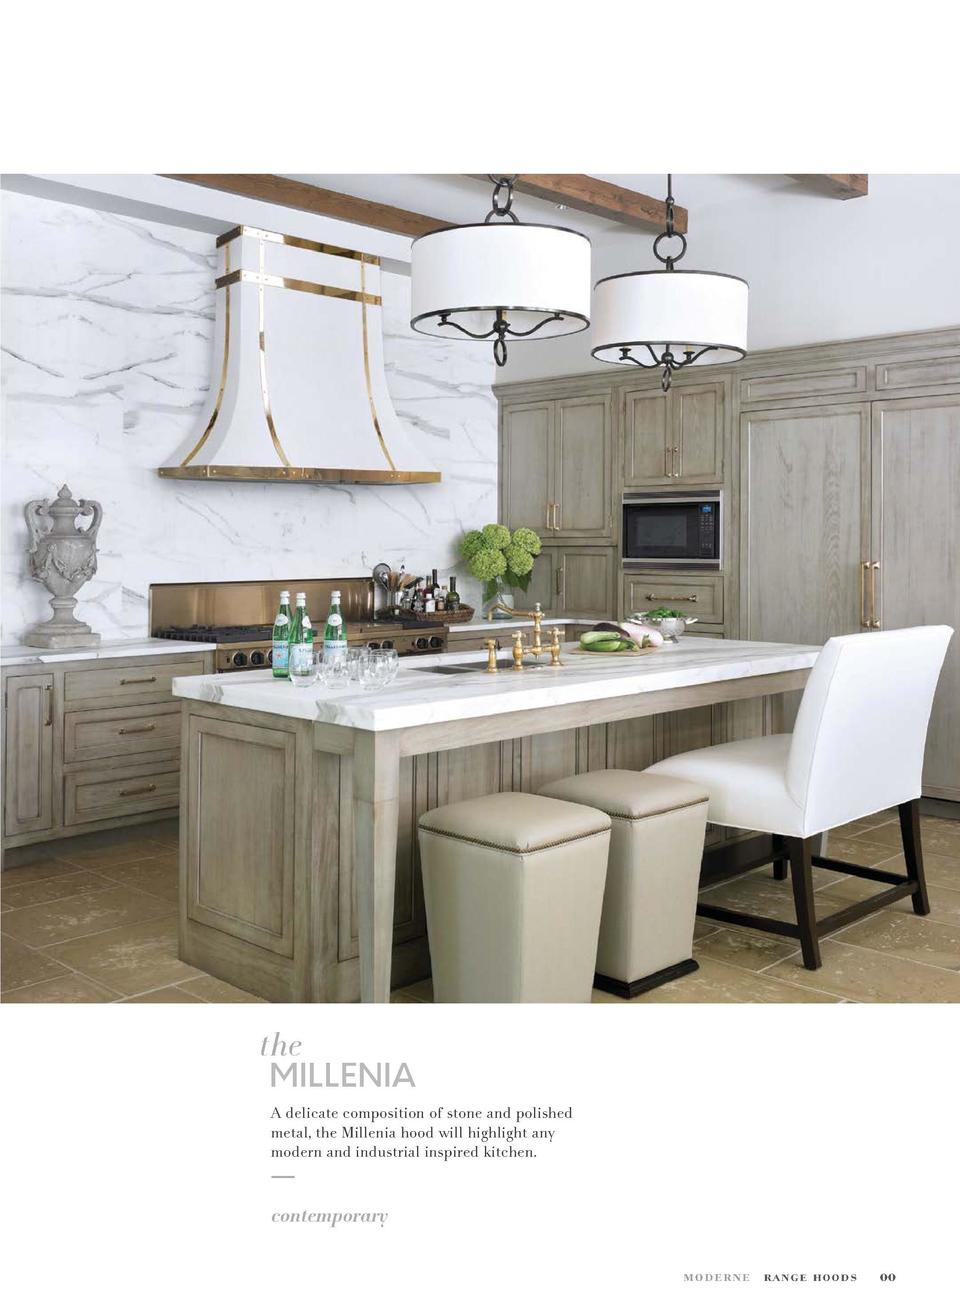 00 Millenia MATERIAL  Scagliola Stone    Ivory ACCENTS  Polished Brass  the  MILLENIA A delicate composition of stone and ...